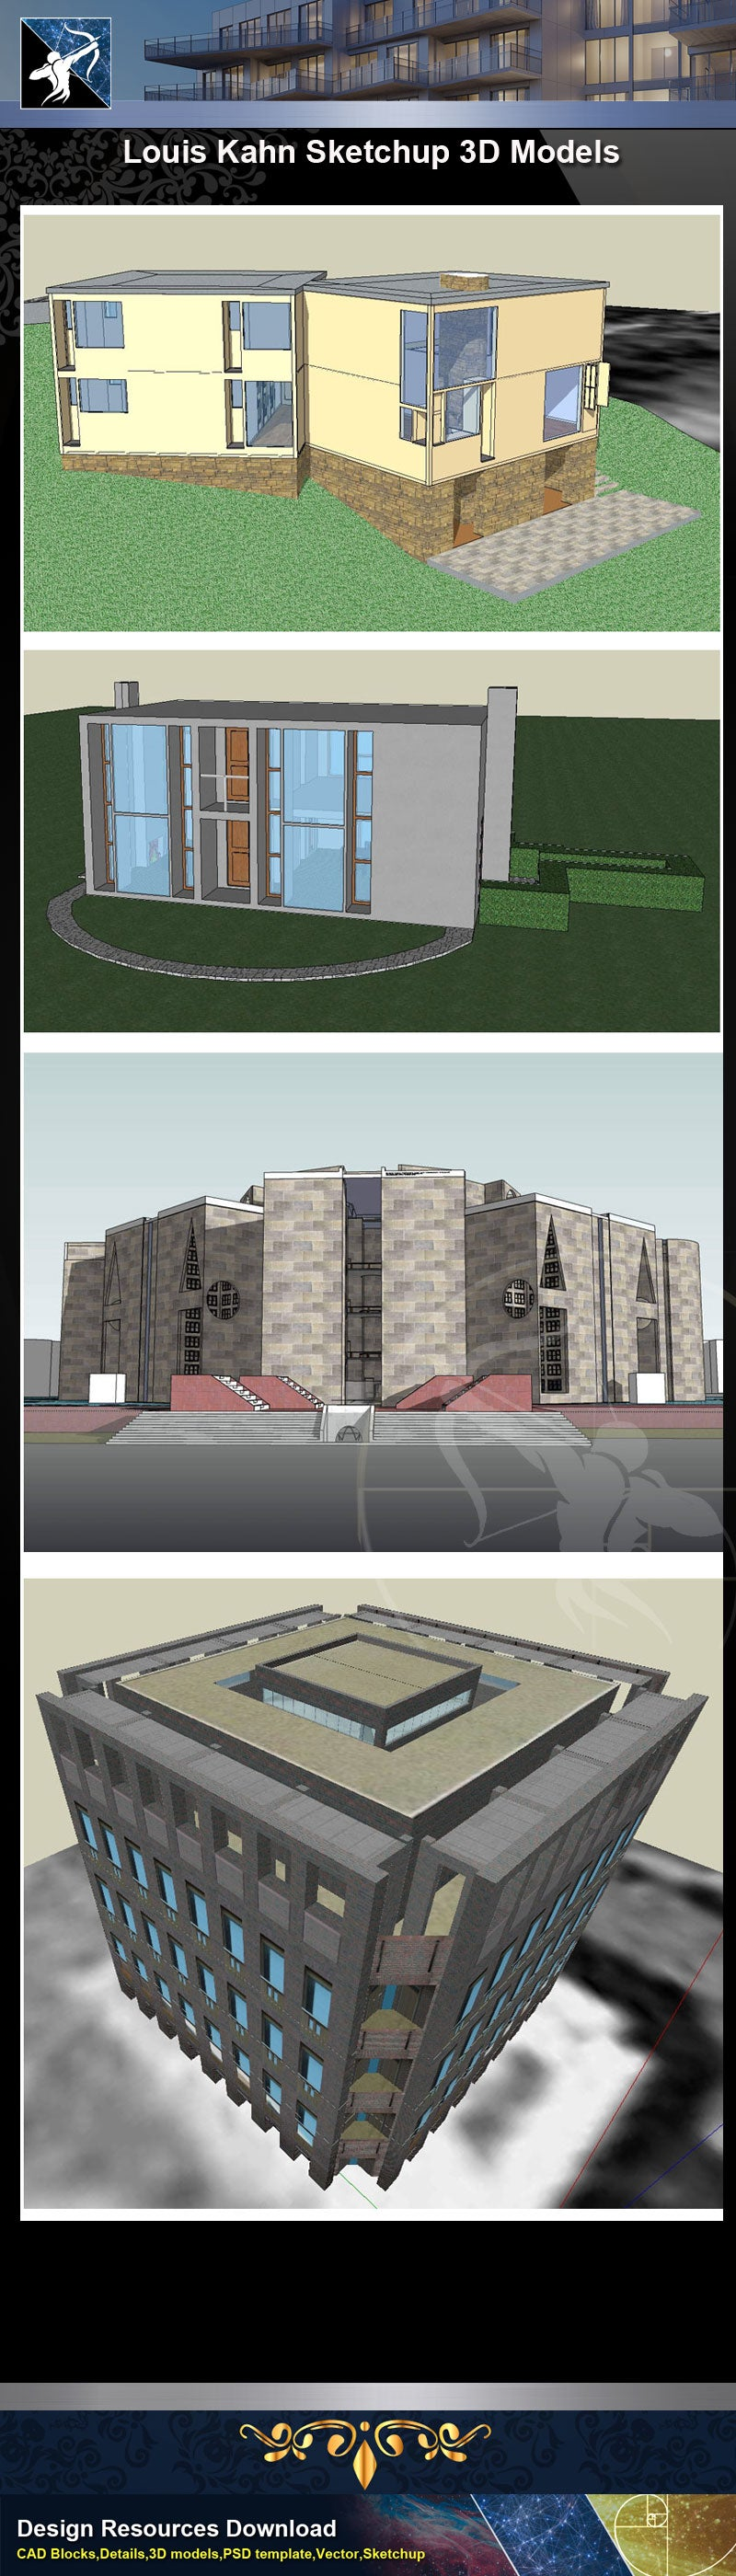 ★Famous Architecture -7 Kinds of Louis Kahn Sketchup 3D Models